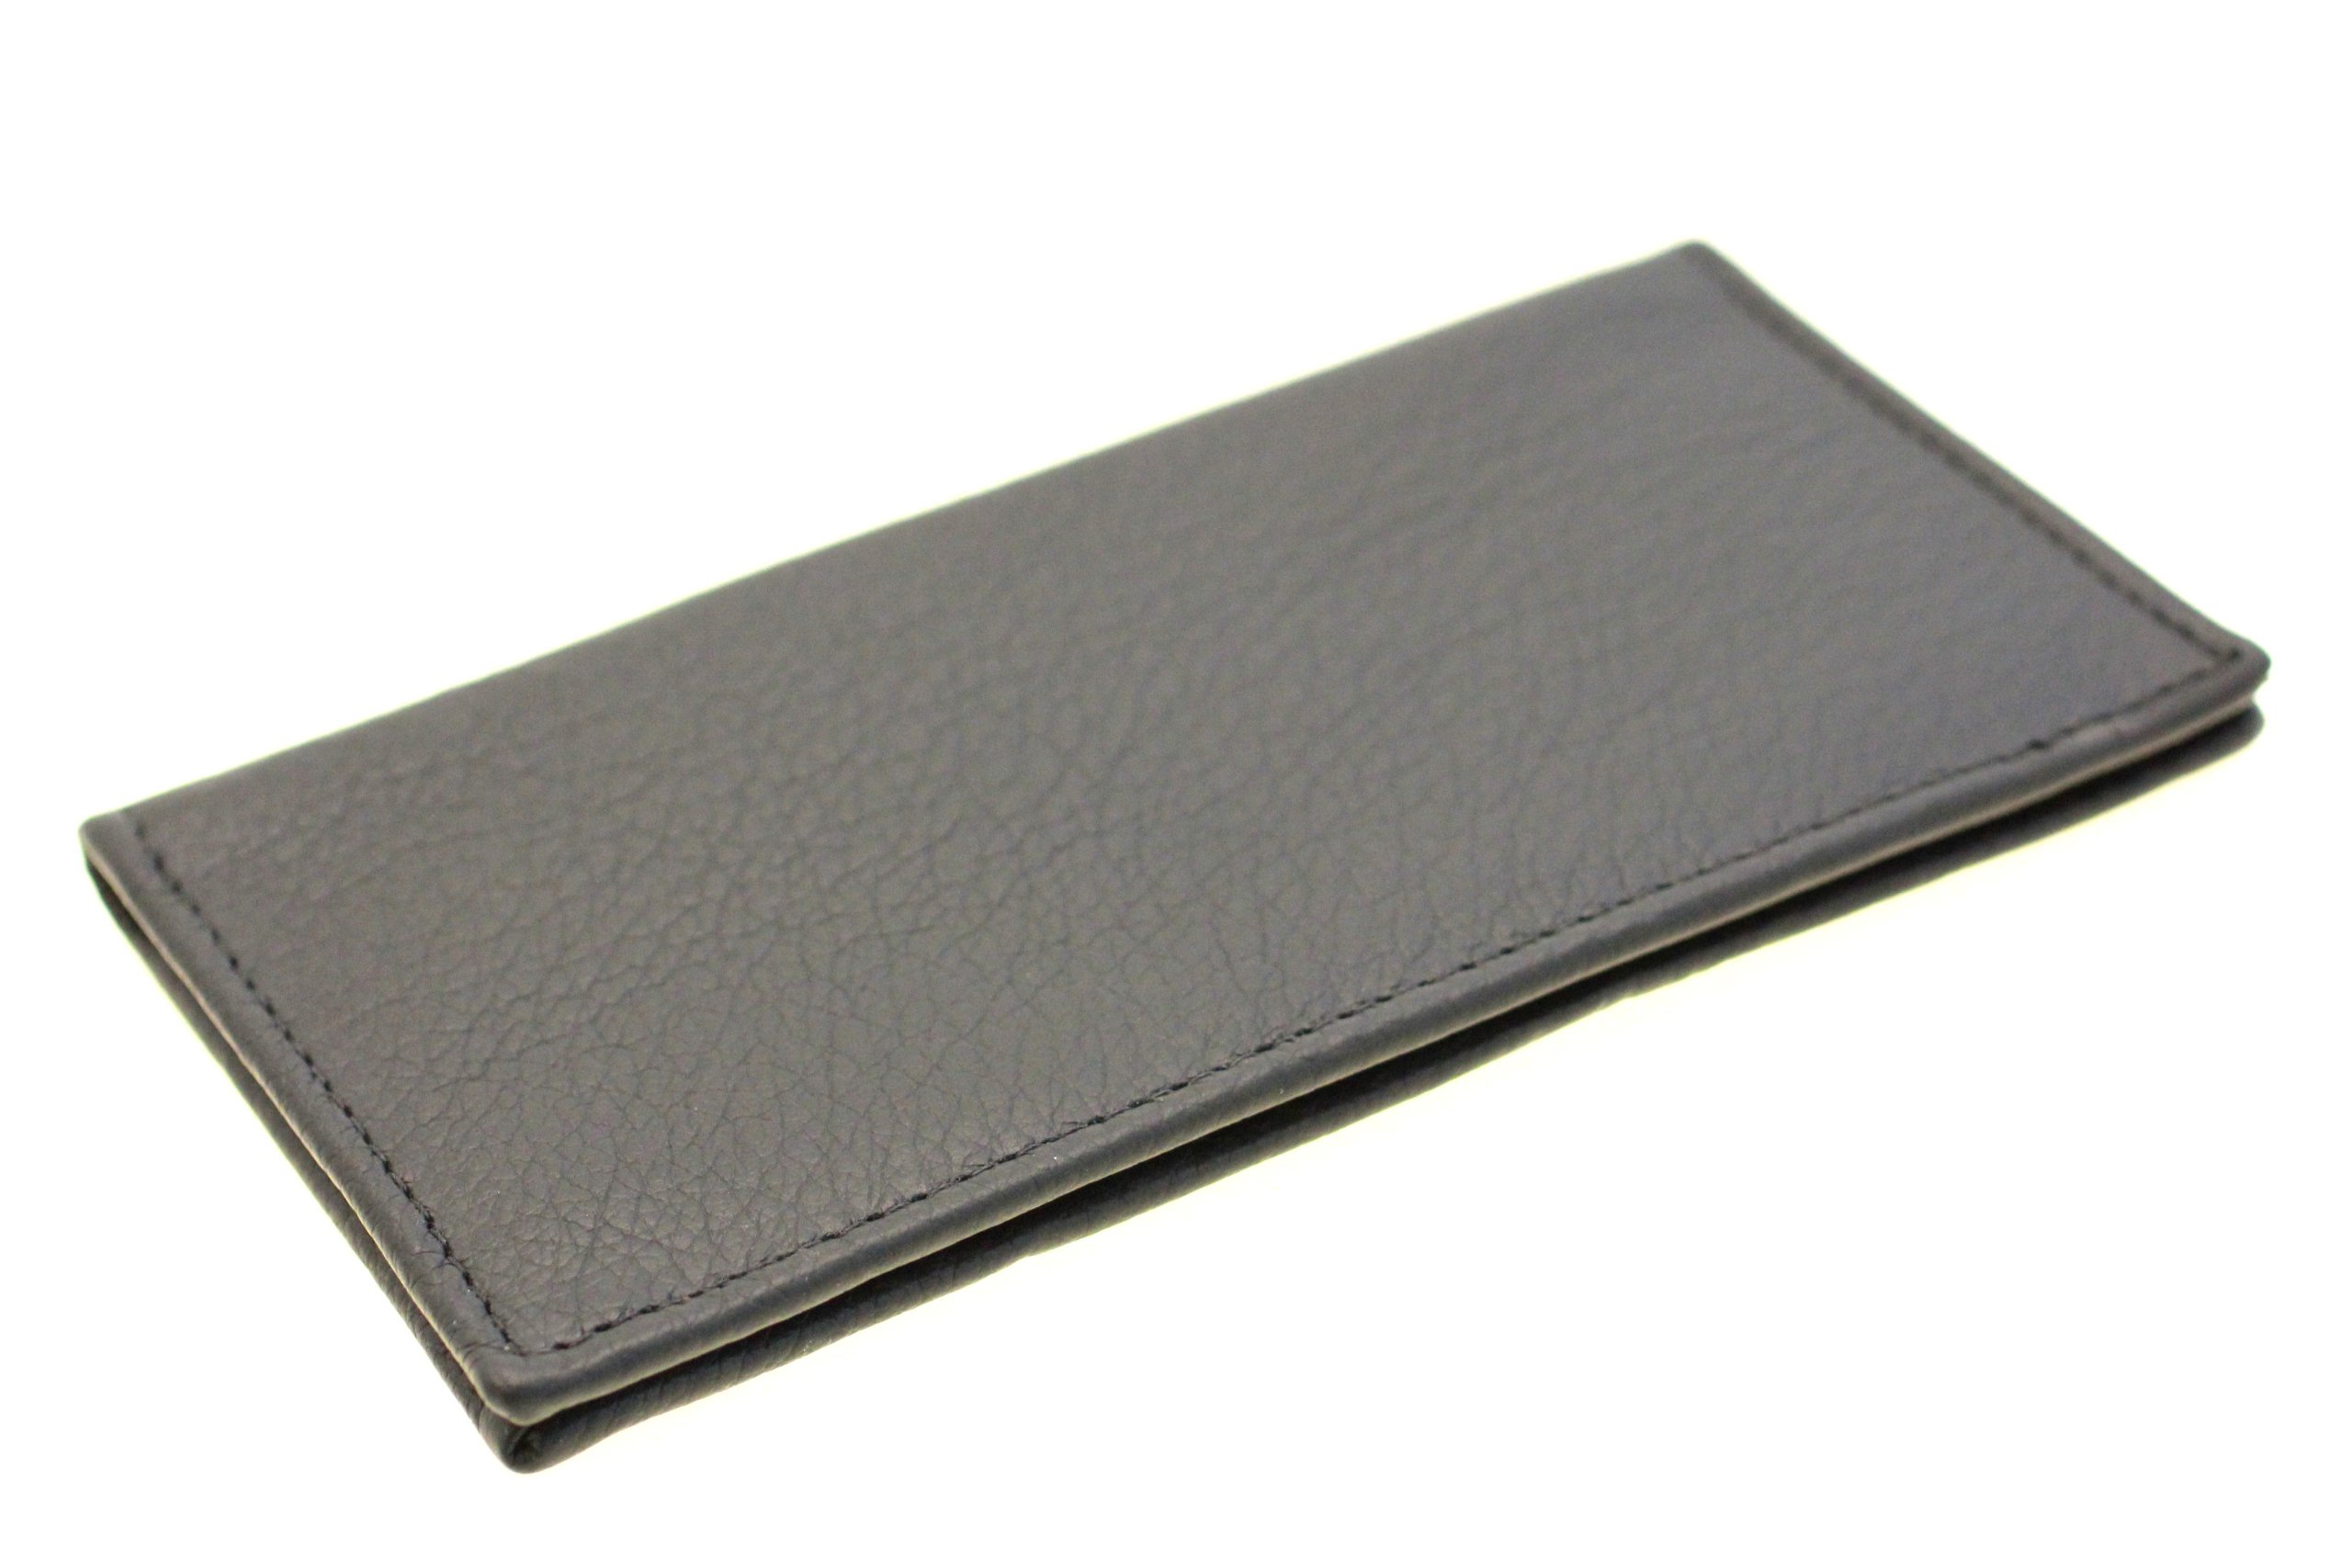 Men Or Women's Checkbook Cover Soft Top Grain Leather Made In USA Black